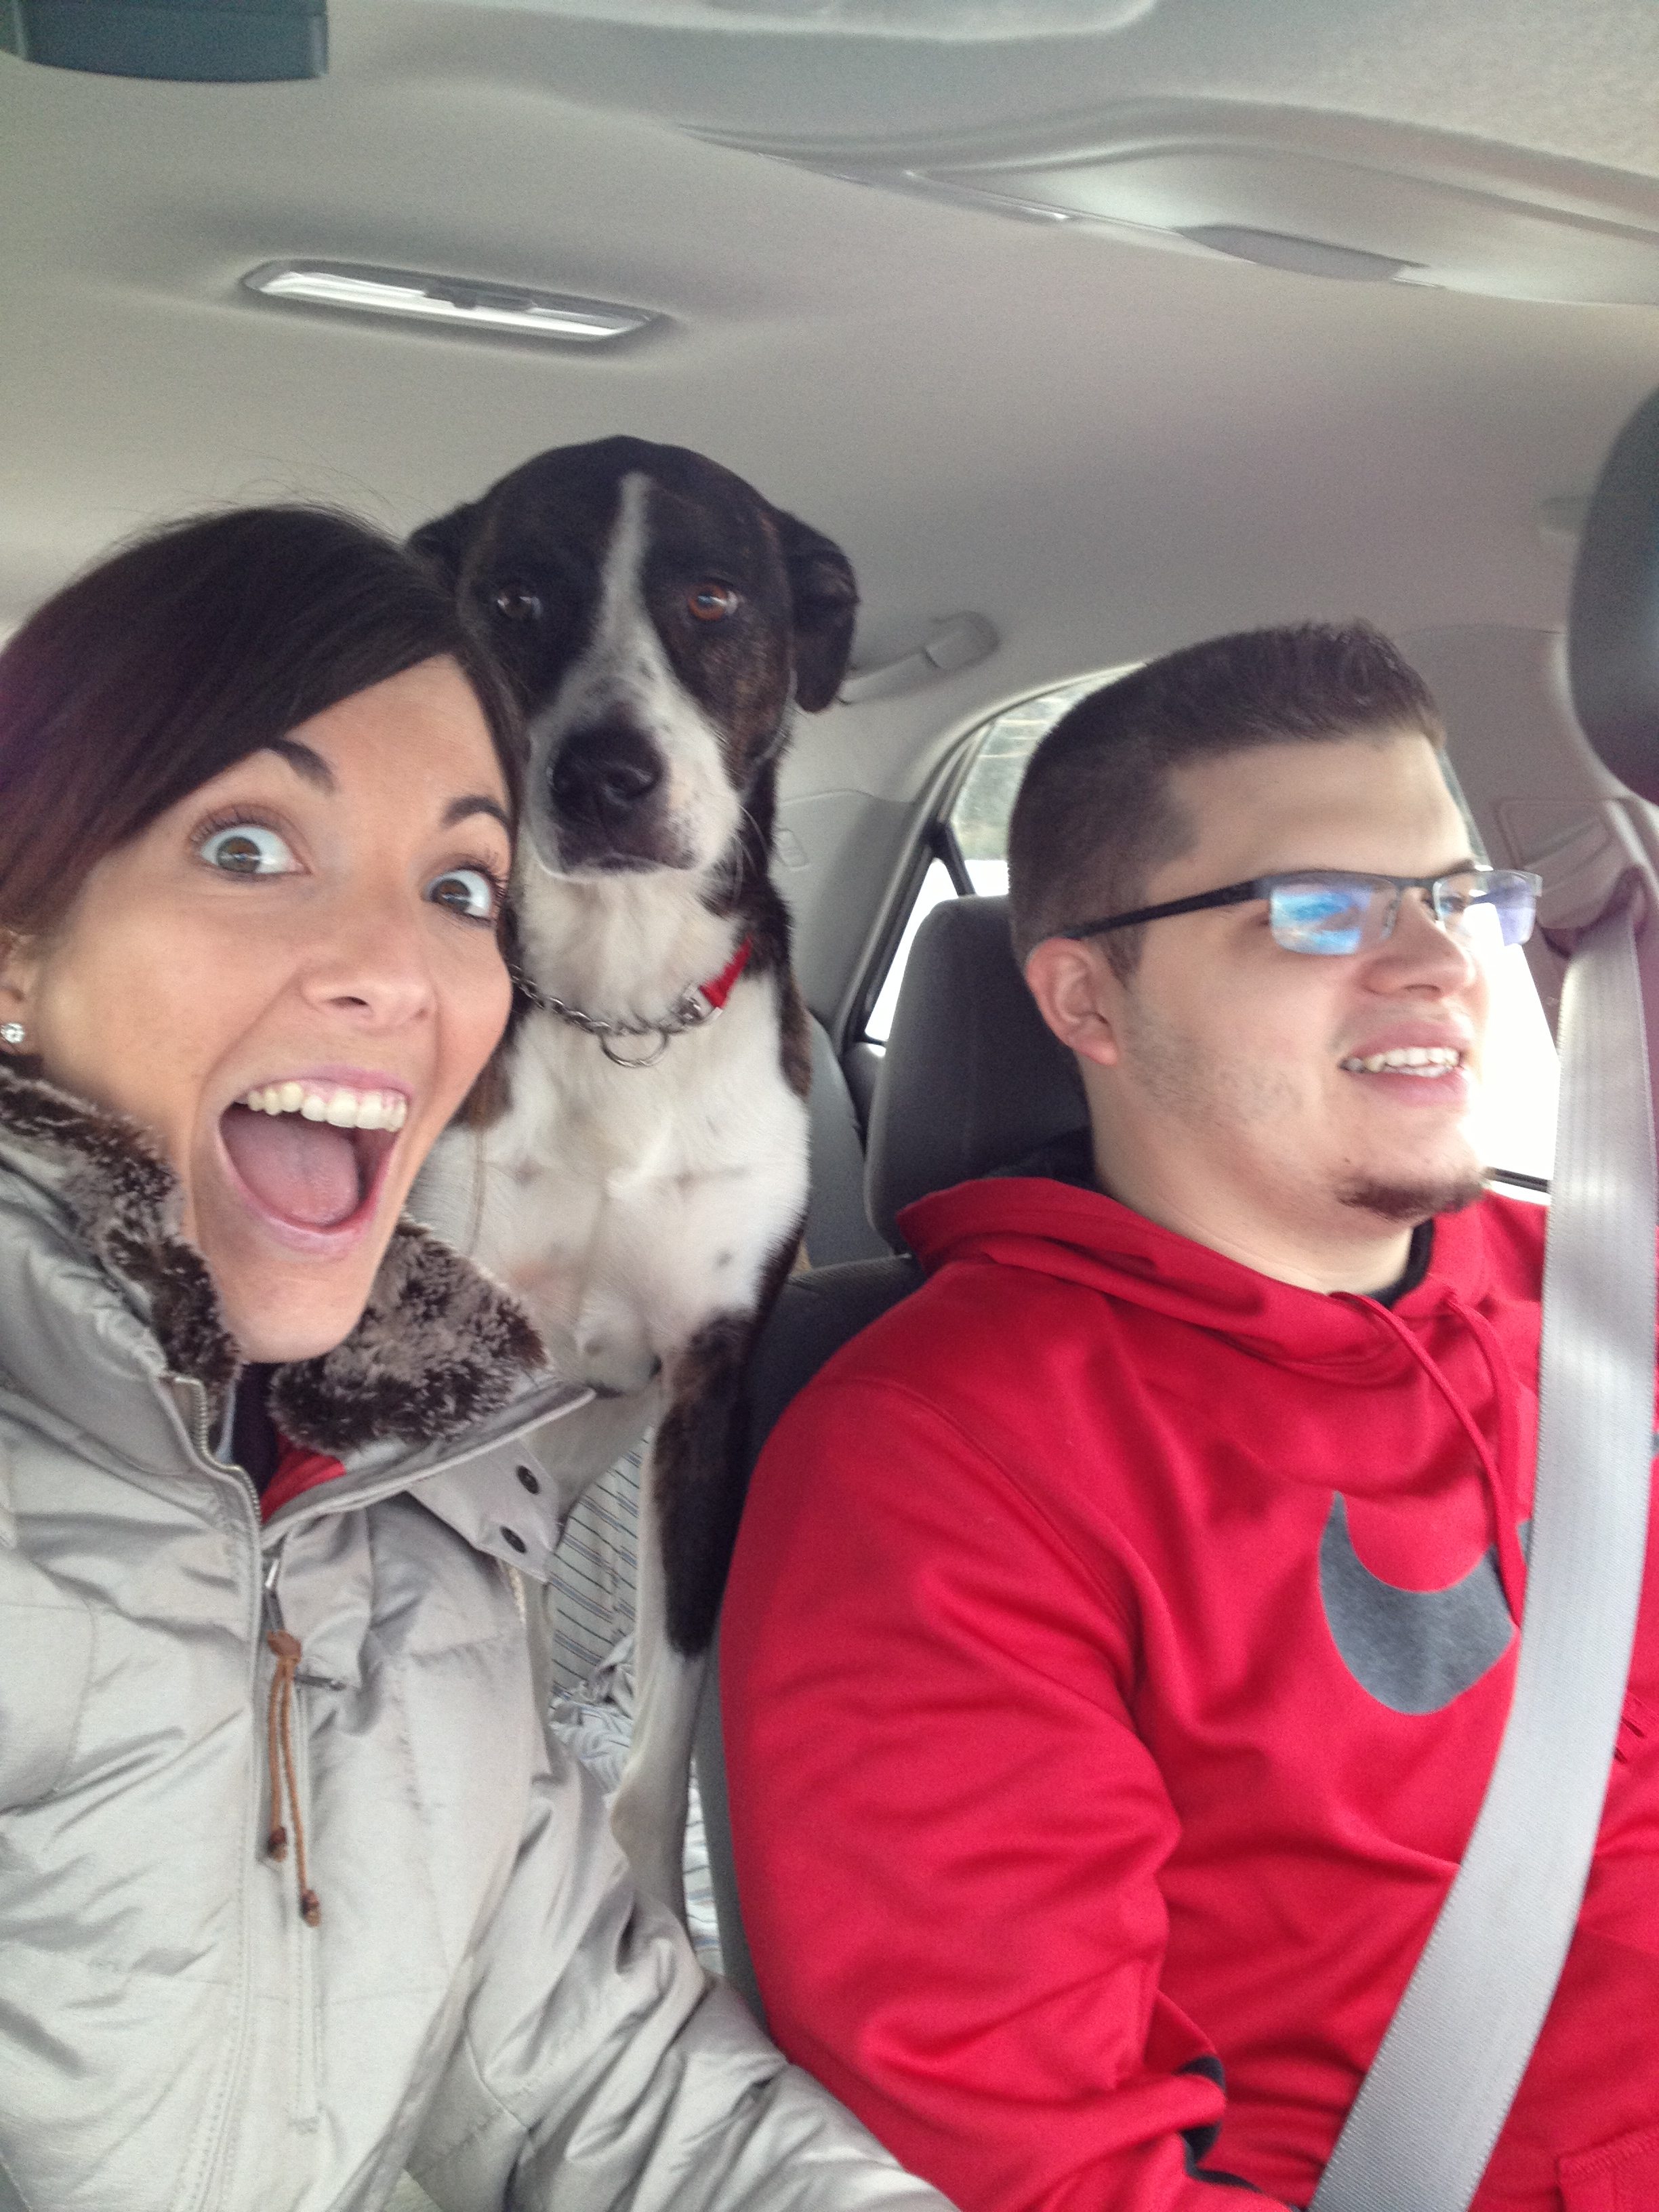 Family Road Trip!